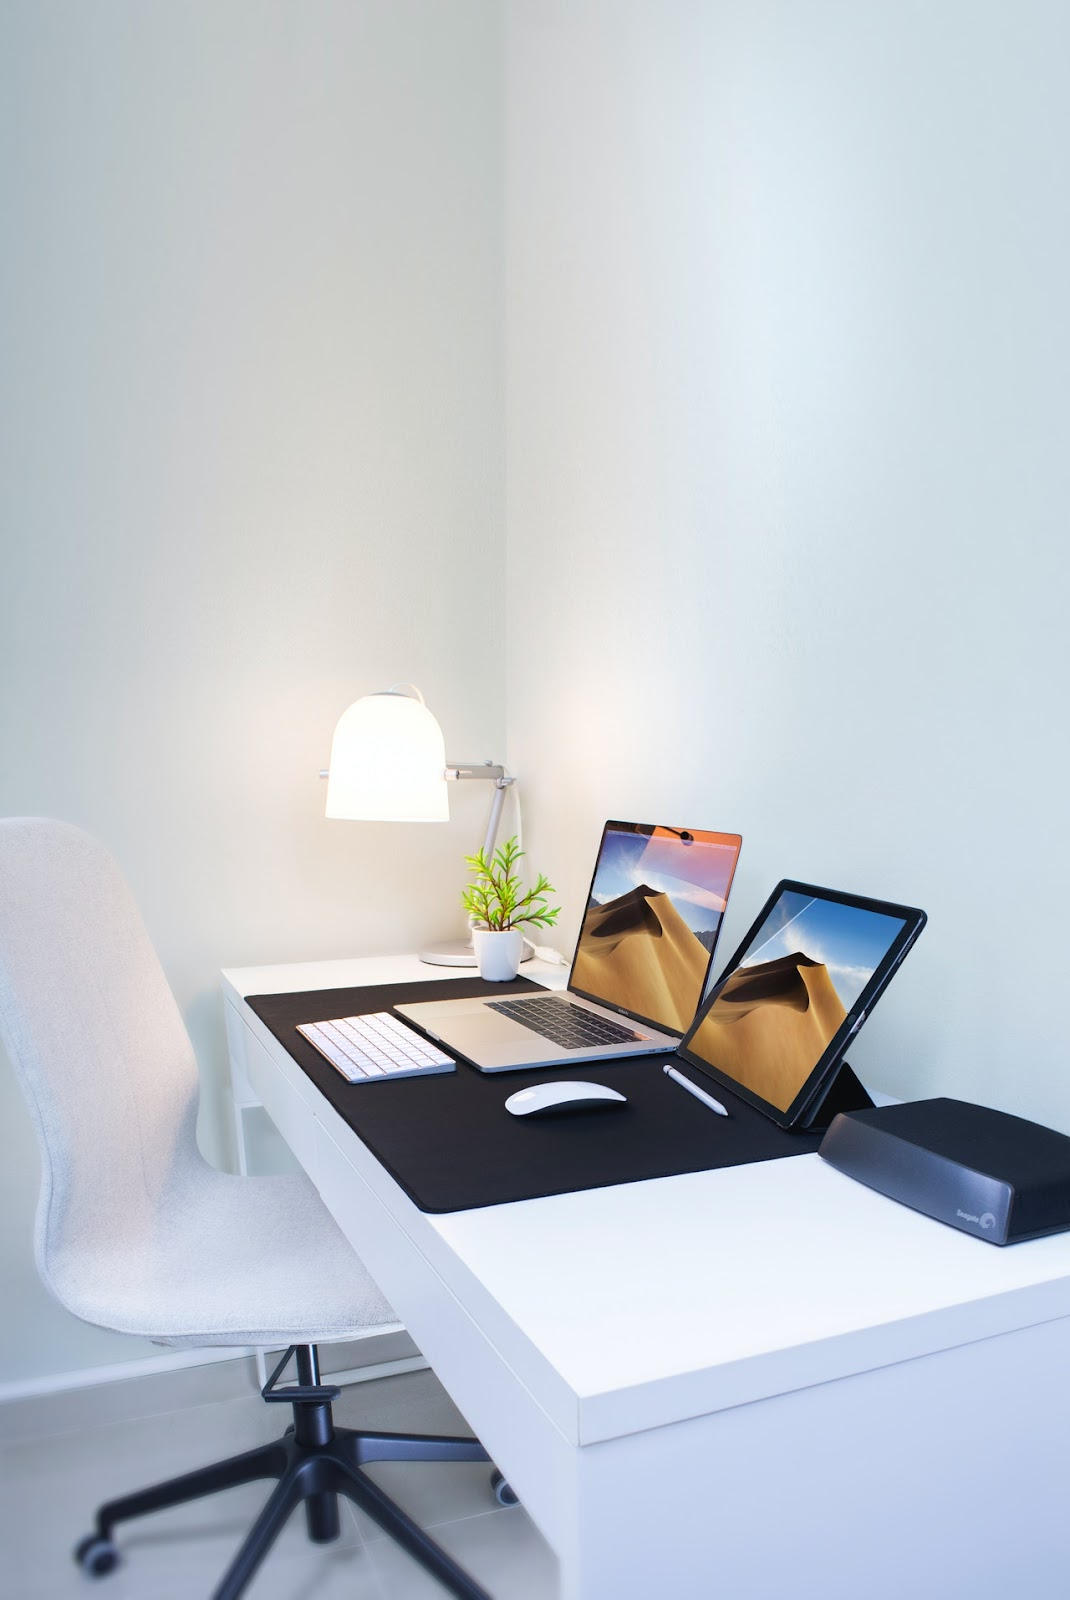 Productive home office workstation